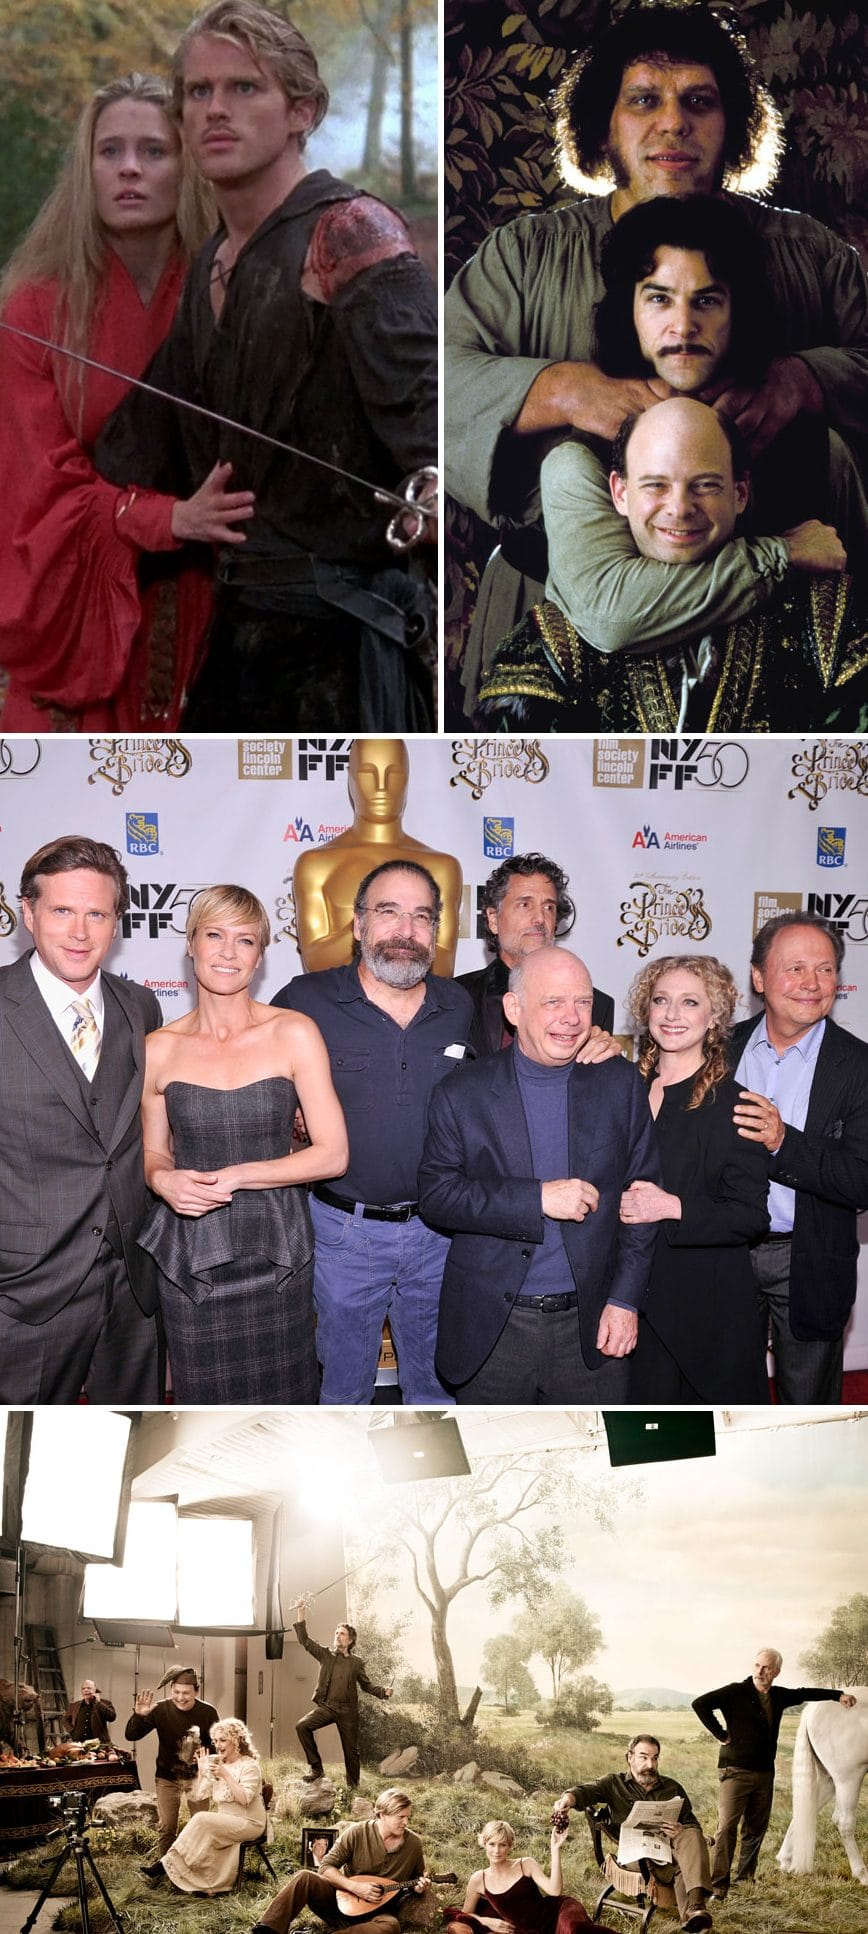 famous-tv-show-movie-reunions-7-5891f3fd59477__880